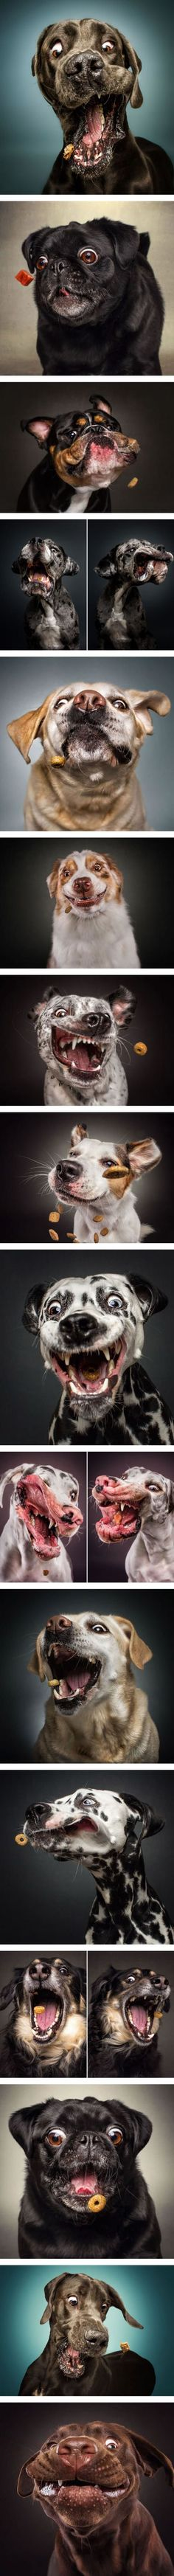 Expressions of Dogs Catching Treats In Mid-Air (By Christian Vieler-Kircher), art, photography